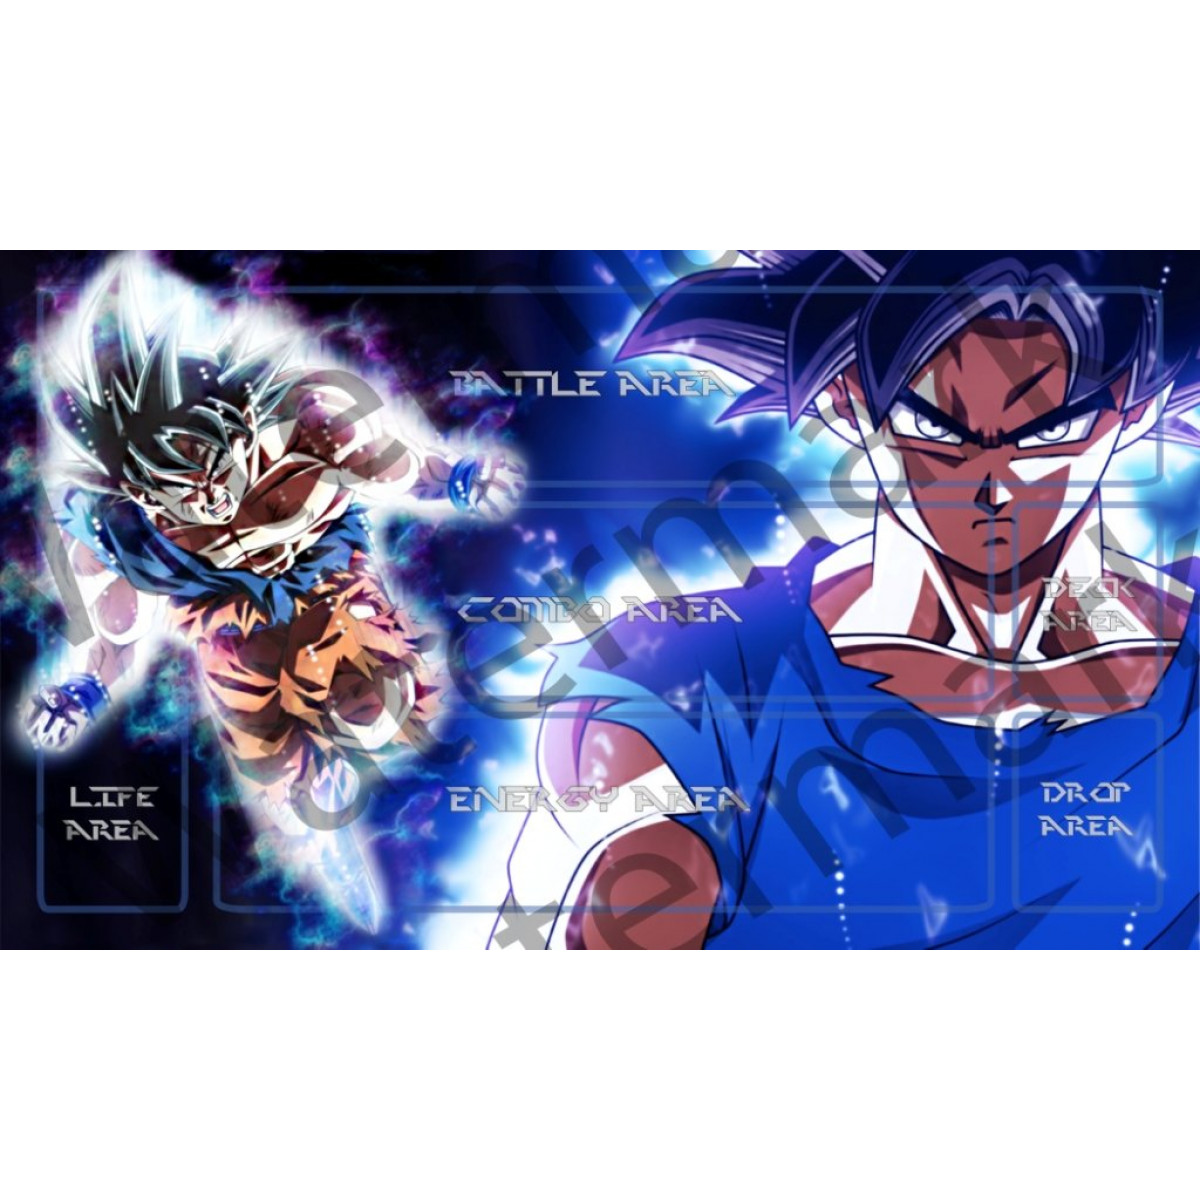 Masters of trade Goku blue Dragonball super Z DBZ TCG playmat gamemat 24 wide 14 tall for trading card game smooth cloth surface rubber base